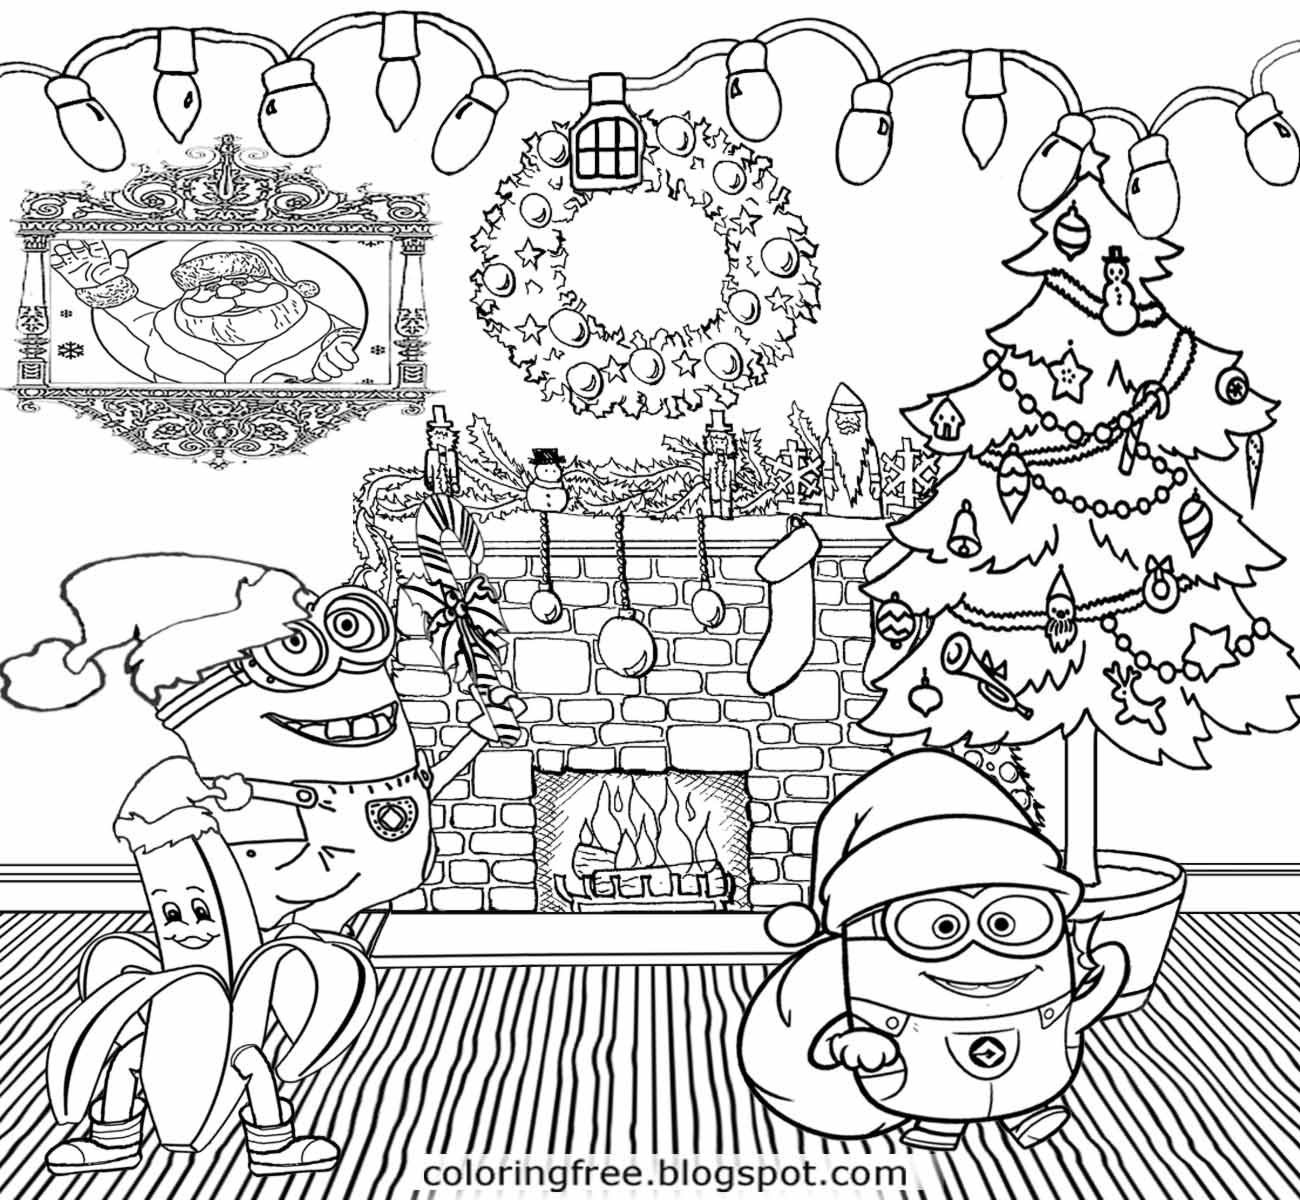 printable coloring pages for older kids free coloring pages printable pictures to color kids coloring printable kids pages for older